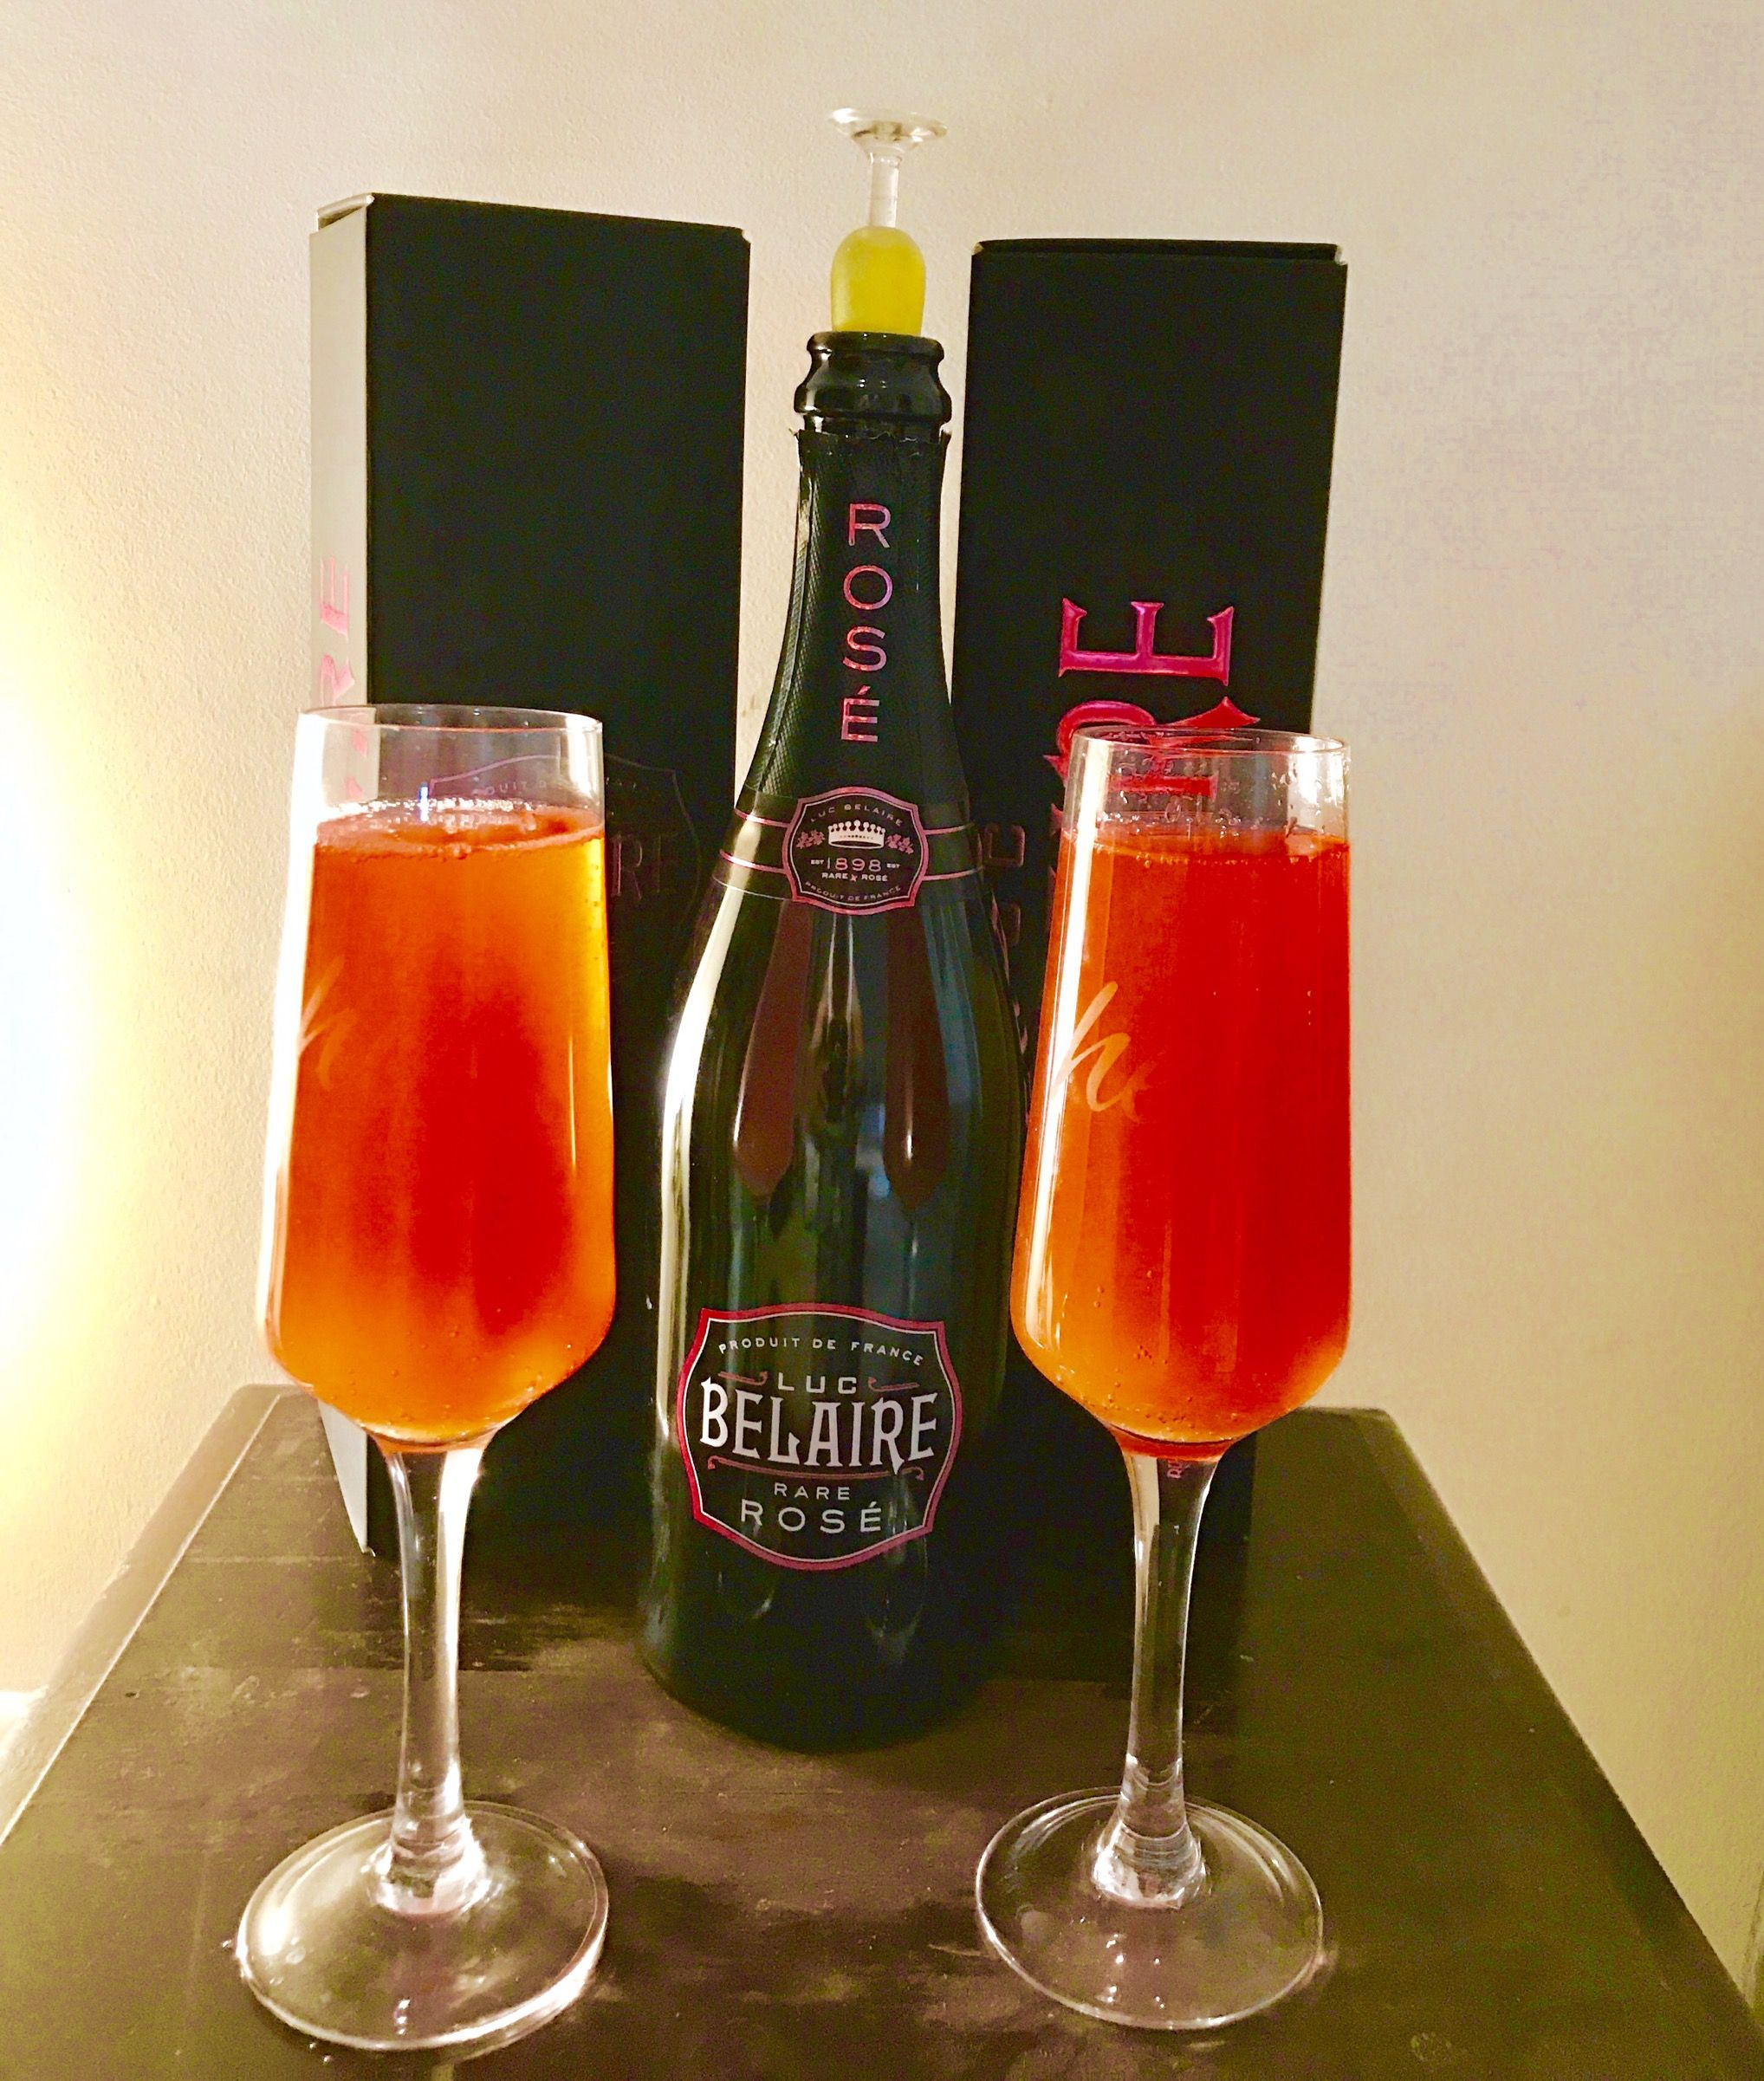 Belaire Rose Mimosa Add Orange Juice To The Chilled Sparkling Wine Rose Recipes Champagne Recipes Cocktails Champagne Recipe